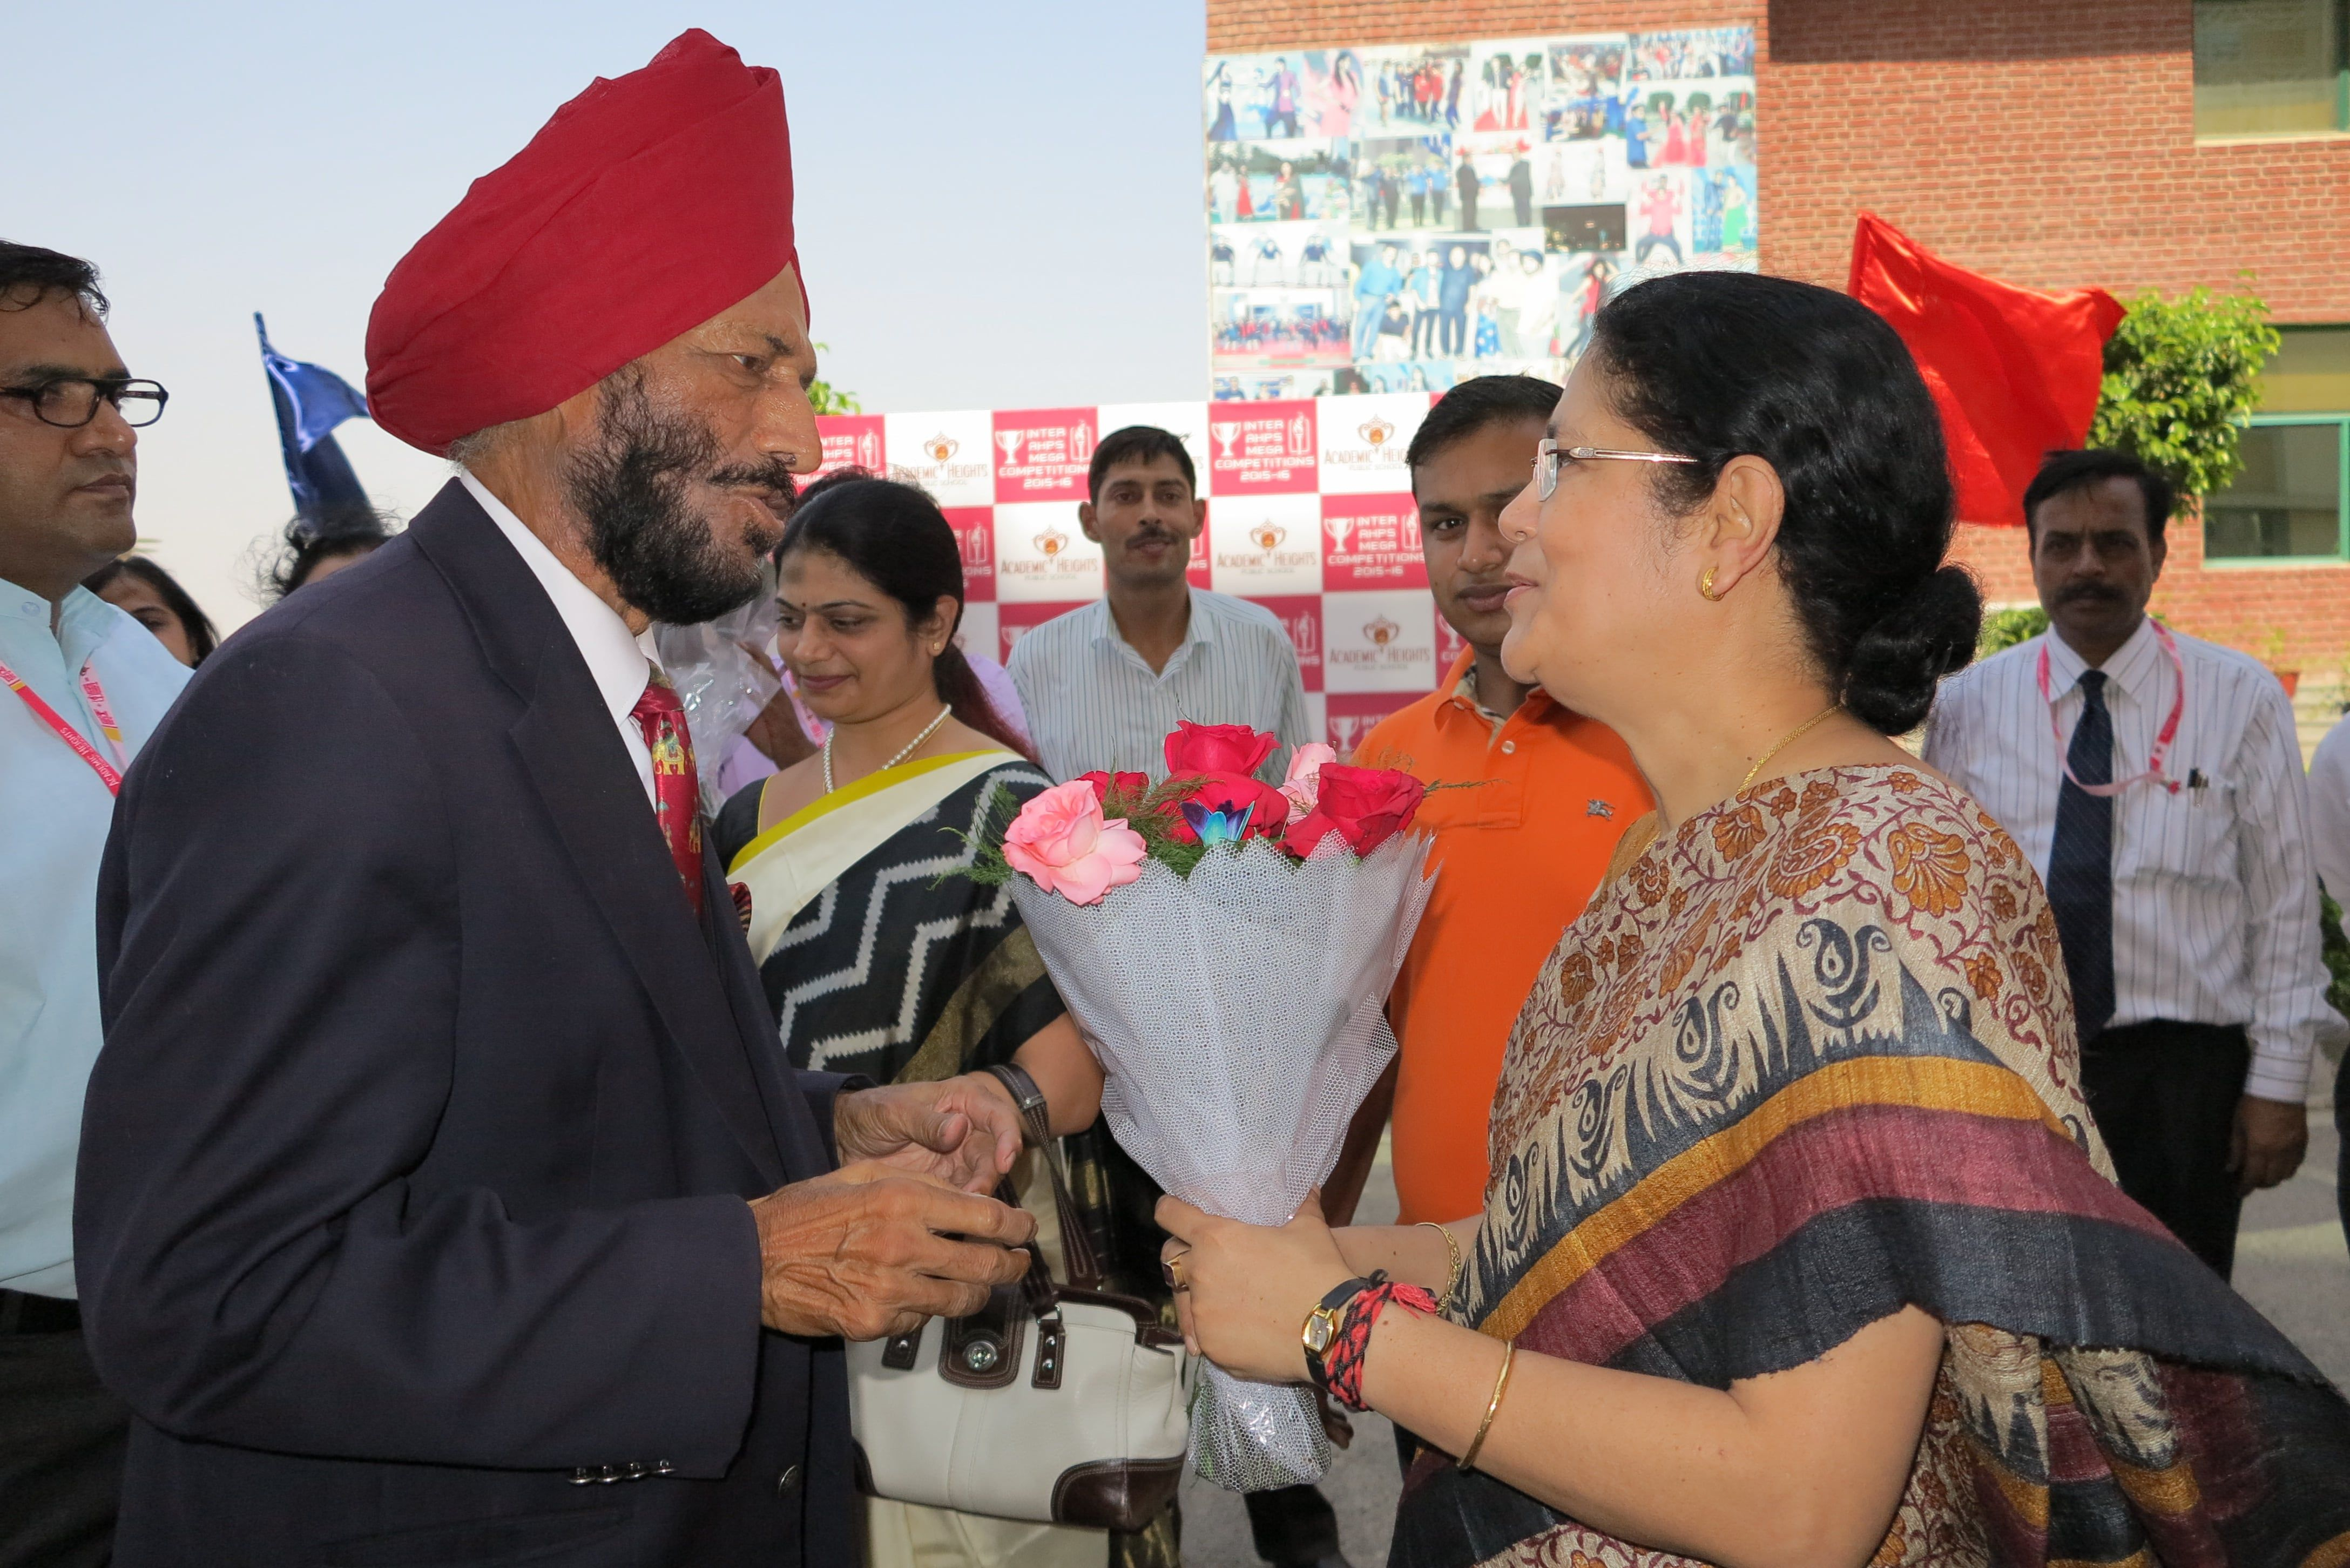 Milkha singh visited gateway campus and motivated students